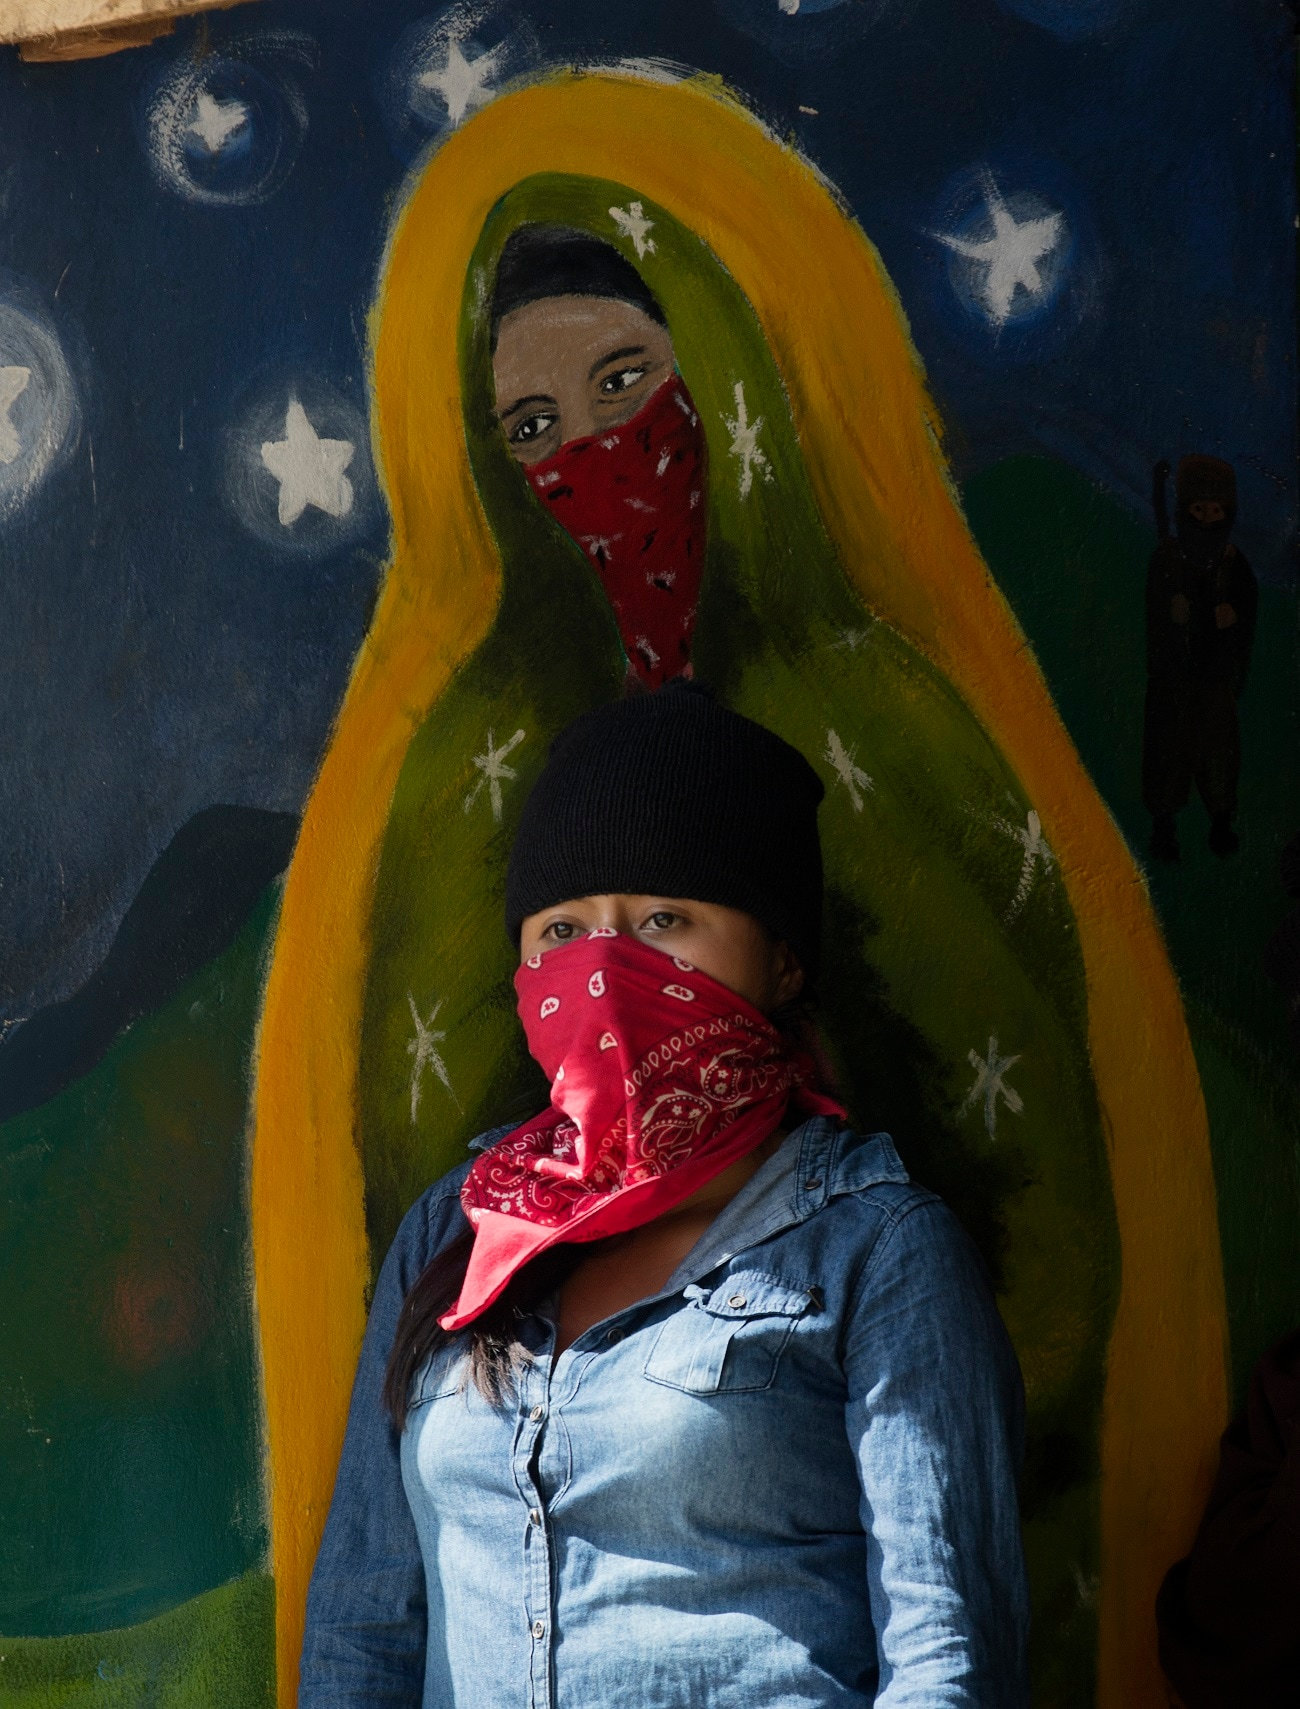 A masked, female member of the Zapatista National Liberation Army, EZLN, stands by a mural depicting a masked version of the Virgin of Guadalupe, during an event marking the 25th anniversary of the Zapatista uprising in La Realidad, Chiapas, Mexico. Mexico's leftist Zapatistas have continued their aggressive criticism of the country's new president, accusing Andres Manuel Lopez Obrador of dishonesty and vowing to confront him. (AP Photo/Eduardo Verdugo)